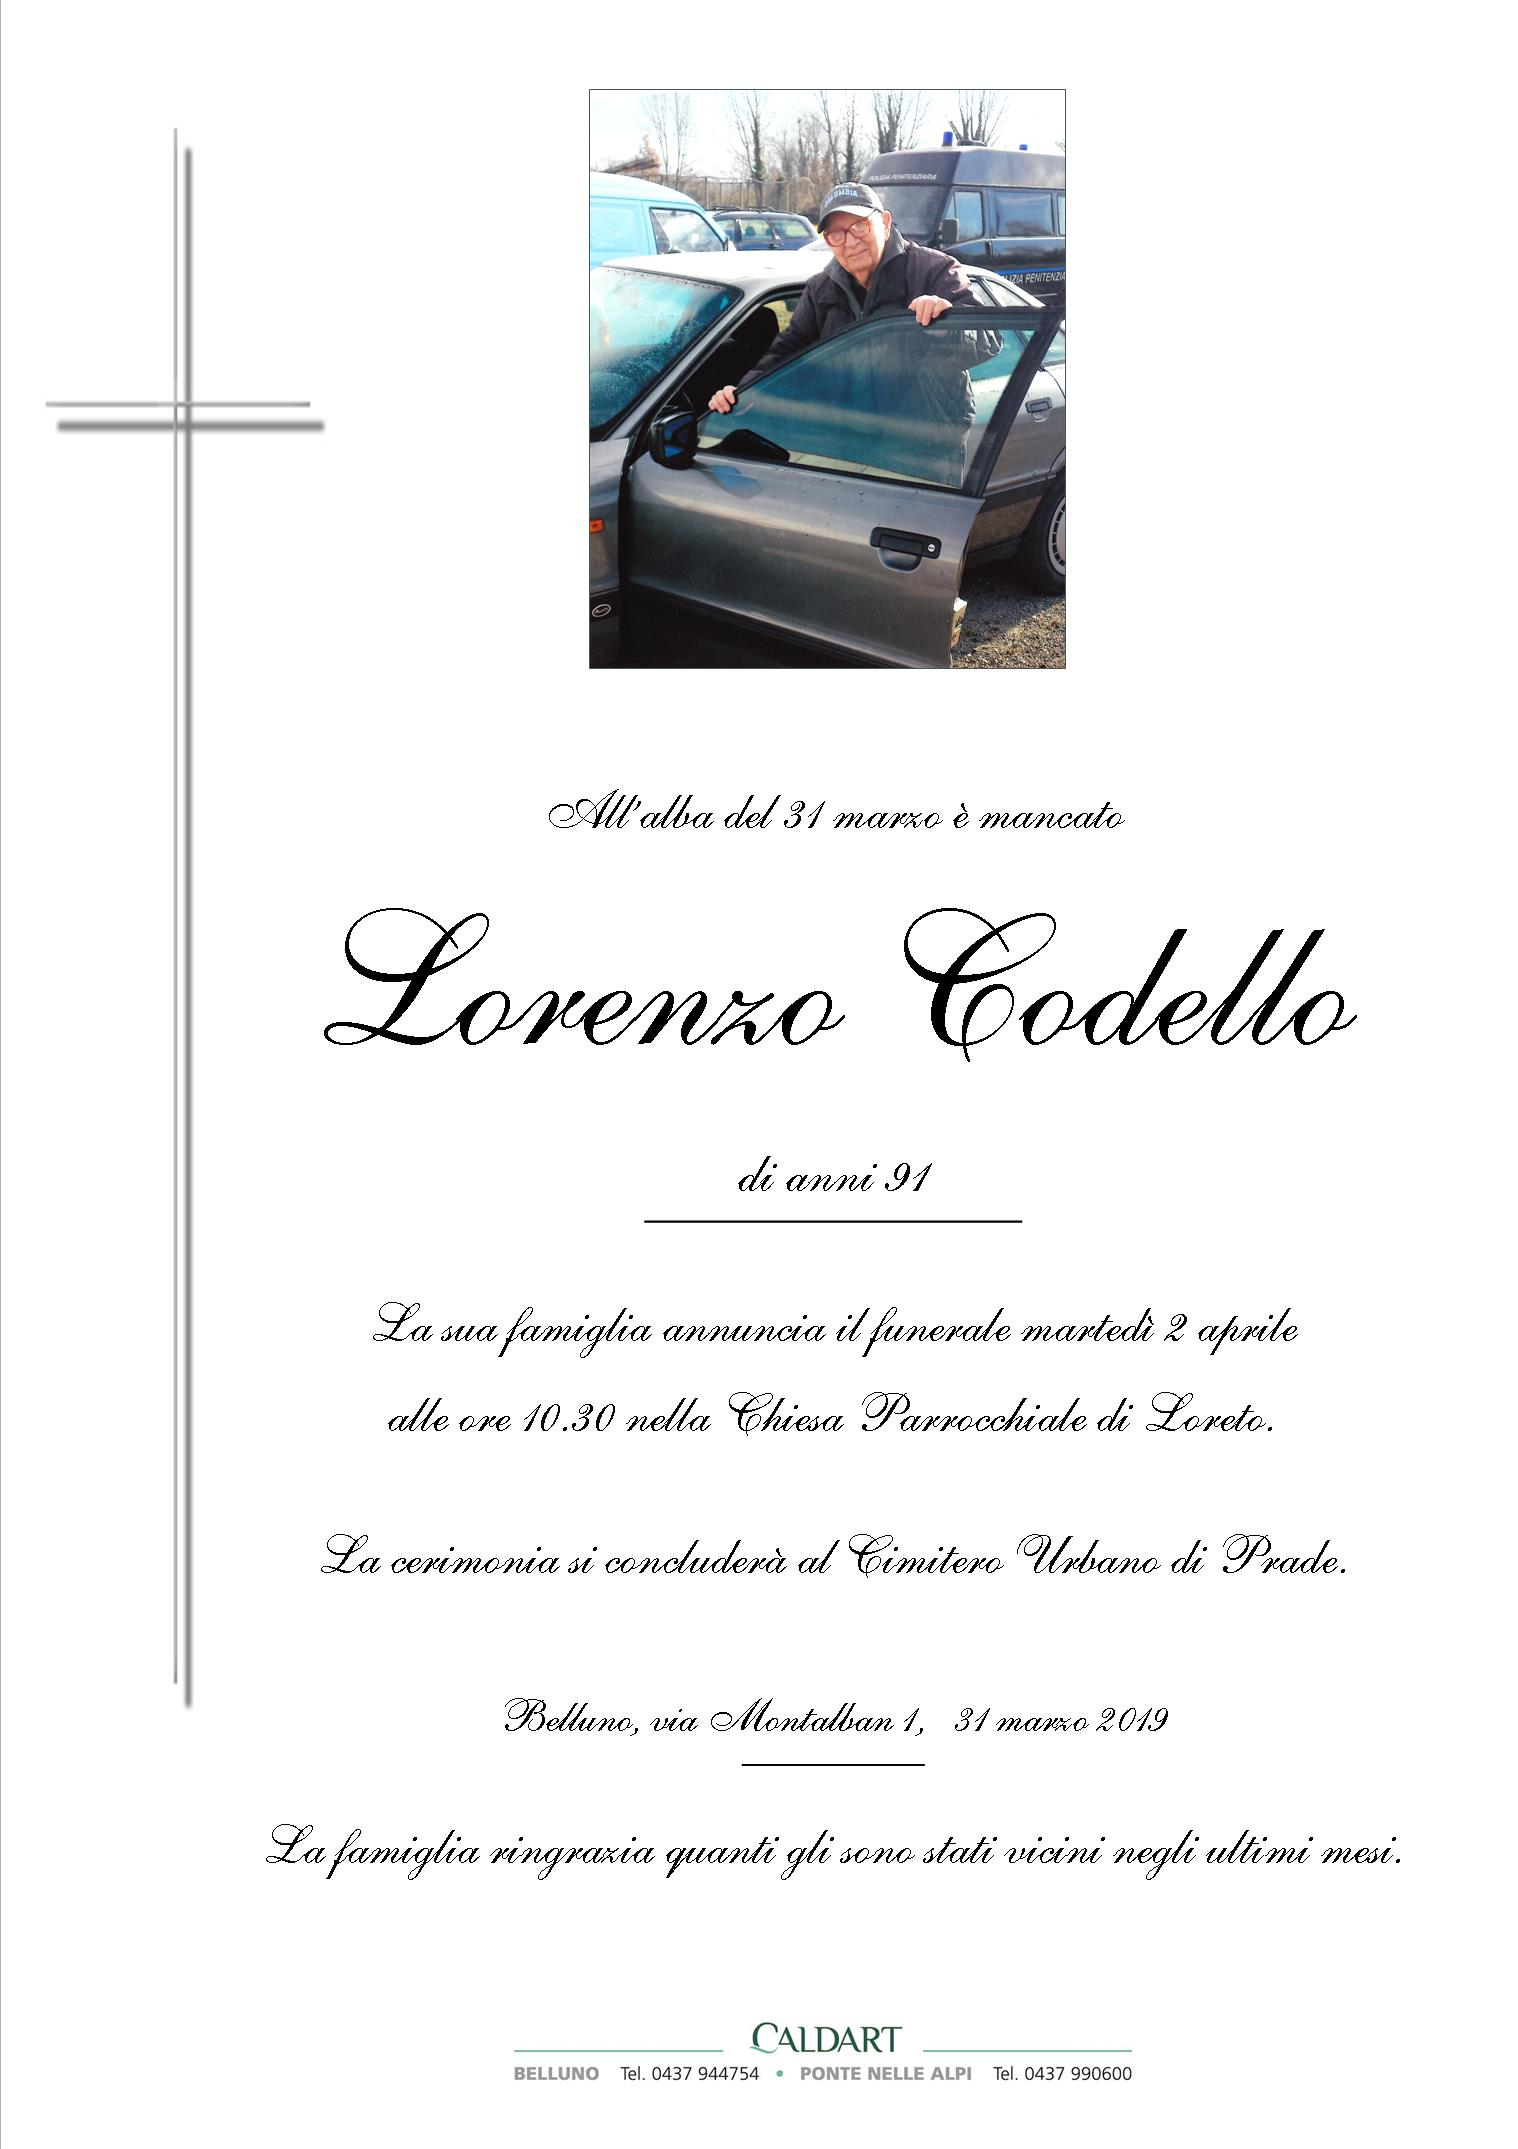 Codello Lorenzo